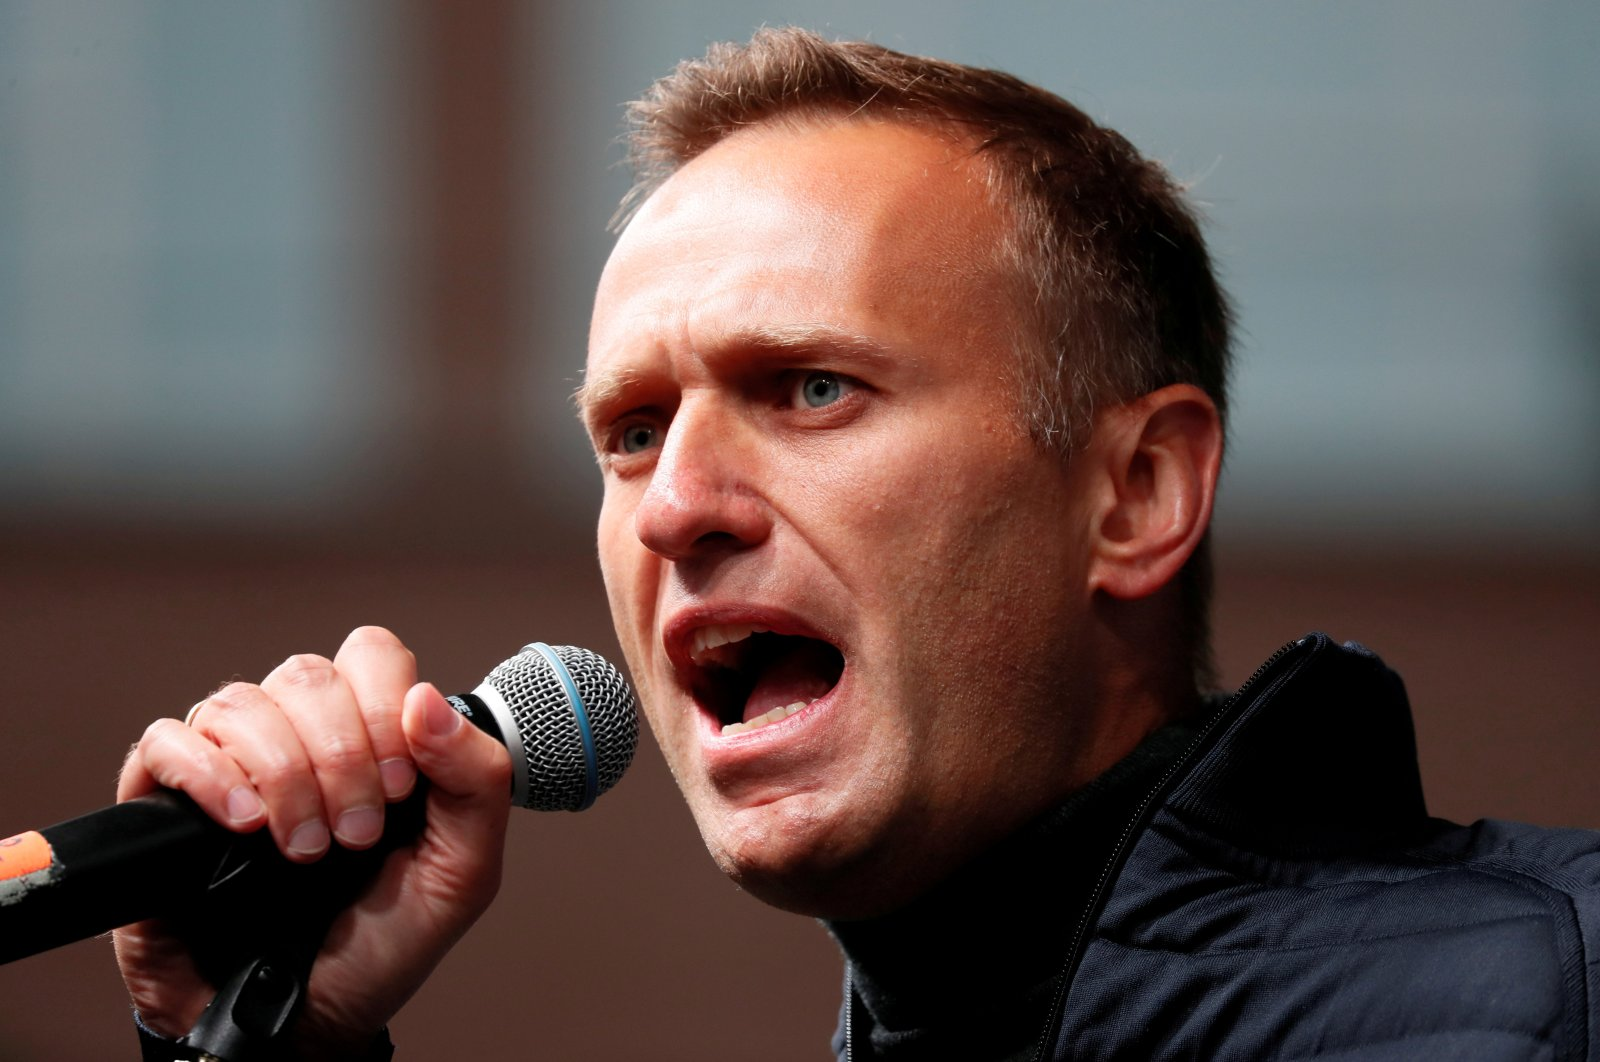 Russian opposition leader Alexei Navalny delivers a speech during a rally to demand the release of jailed protesters, in Moscow, Russia, Sept. 29, 2019. (Reuters Photo)